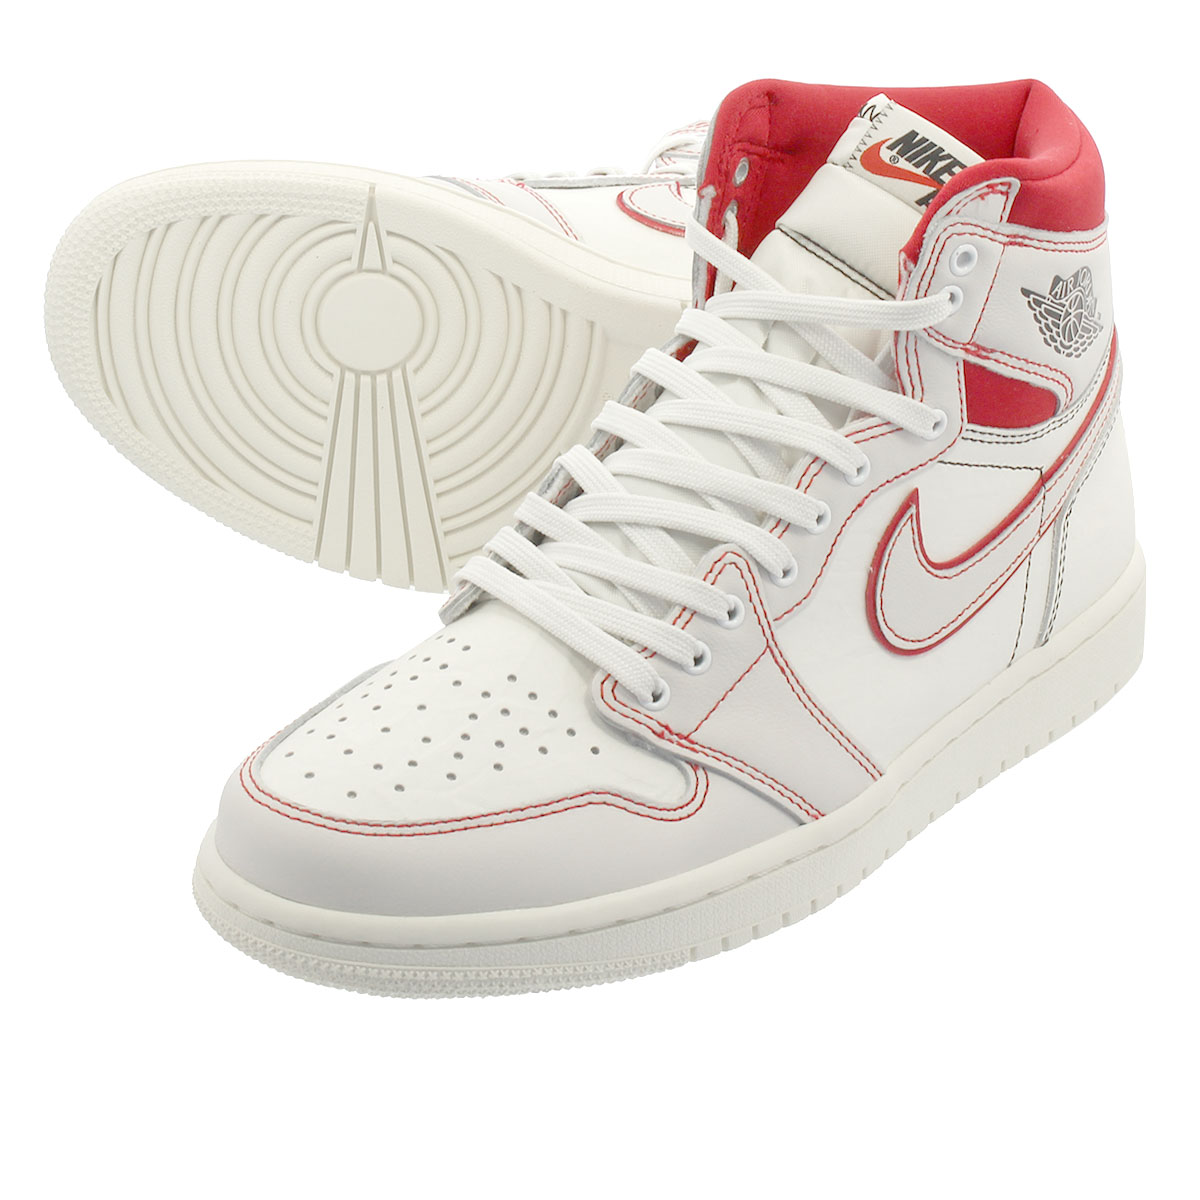 sneakers for cheap 6fd88 c05b8 NIKE AIR JORDAN 1 RETRO HIGH OG Nike Air Jordan 1 nostalgic high OG SAIL  BLACK PHANTOM UNIVERSITY RED 555,088-160